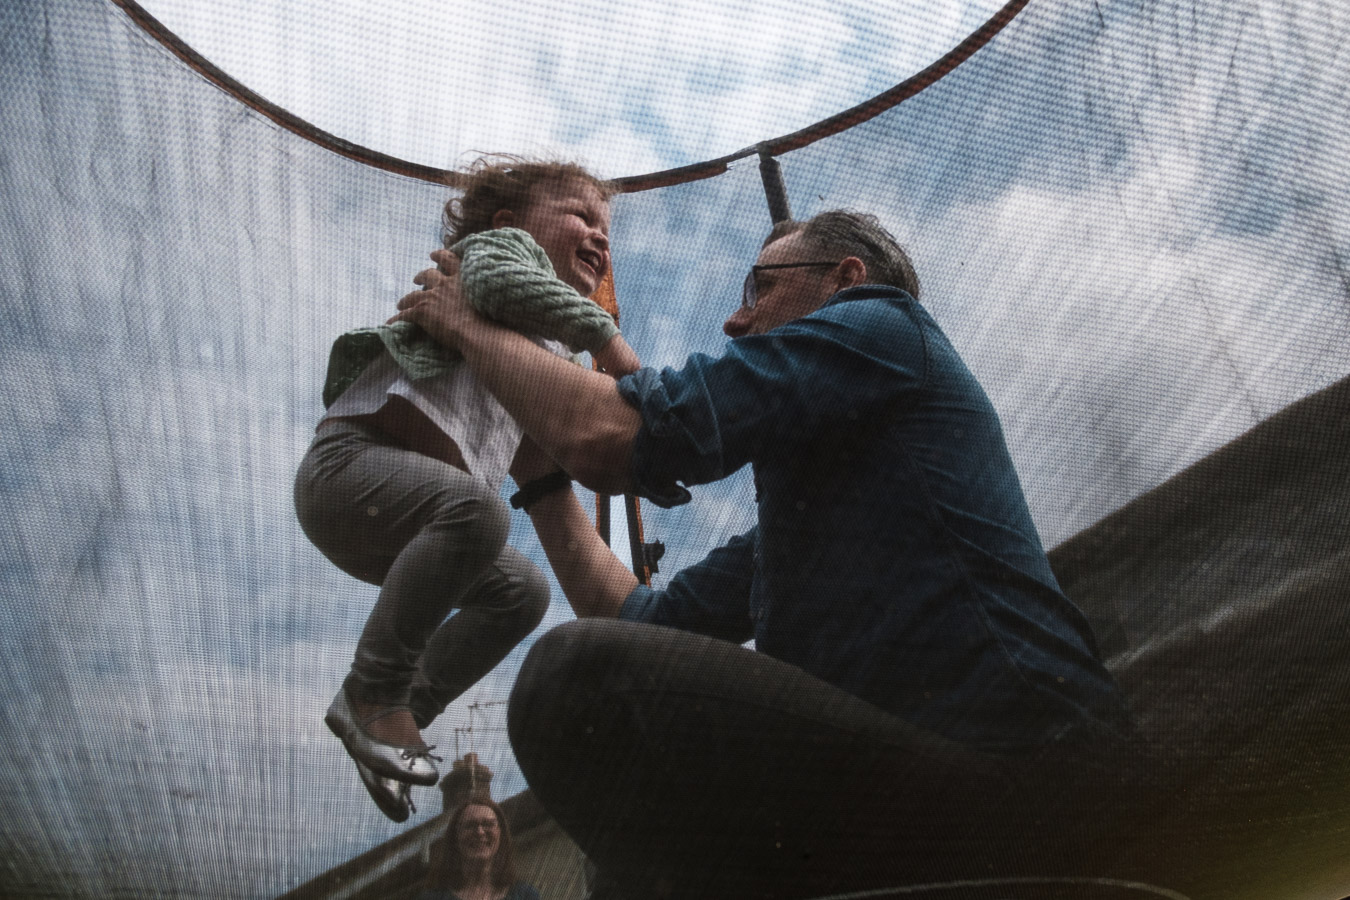 Father and lifting daughter on trampoline whilst mum watches during a family photo session.